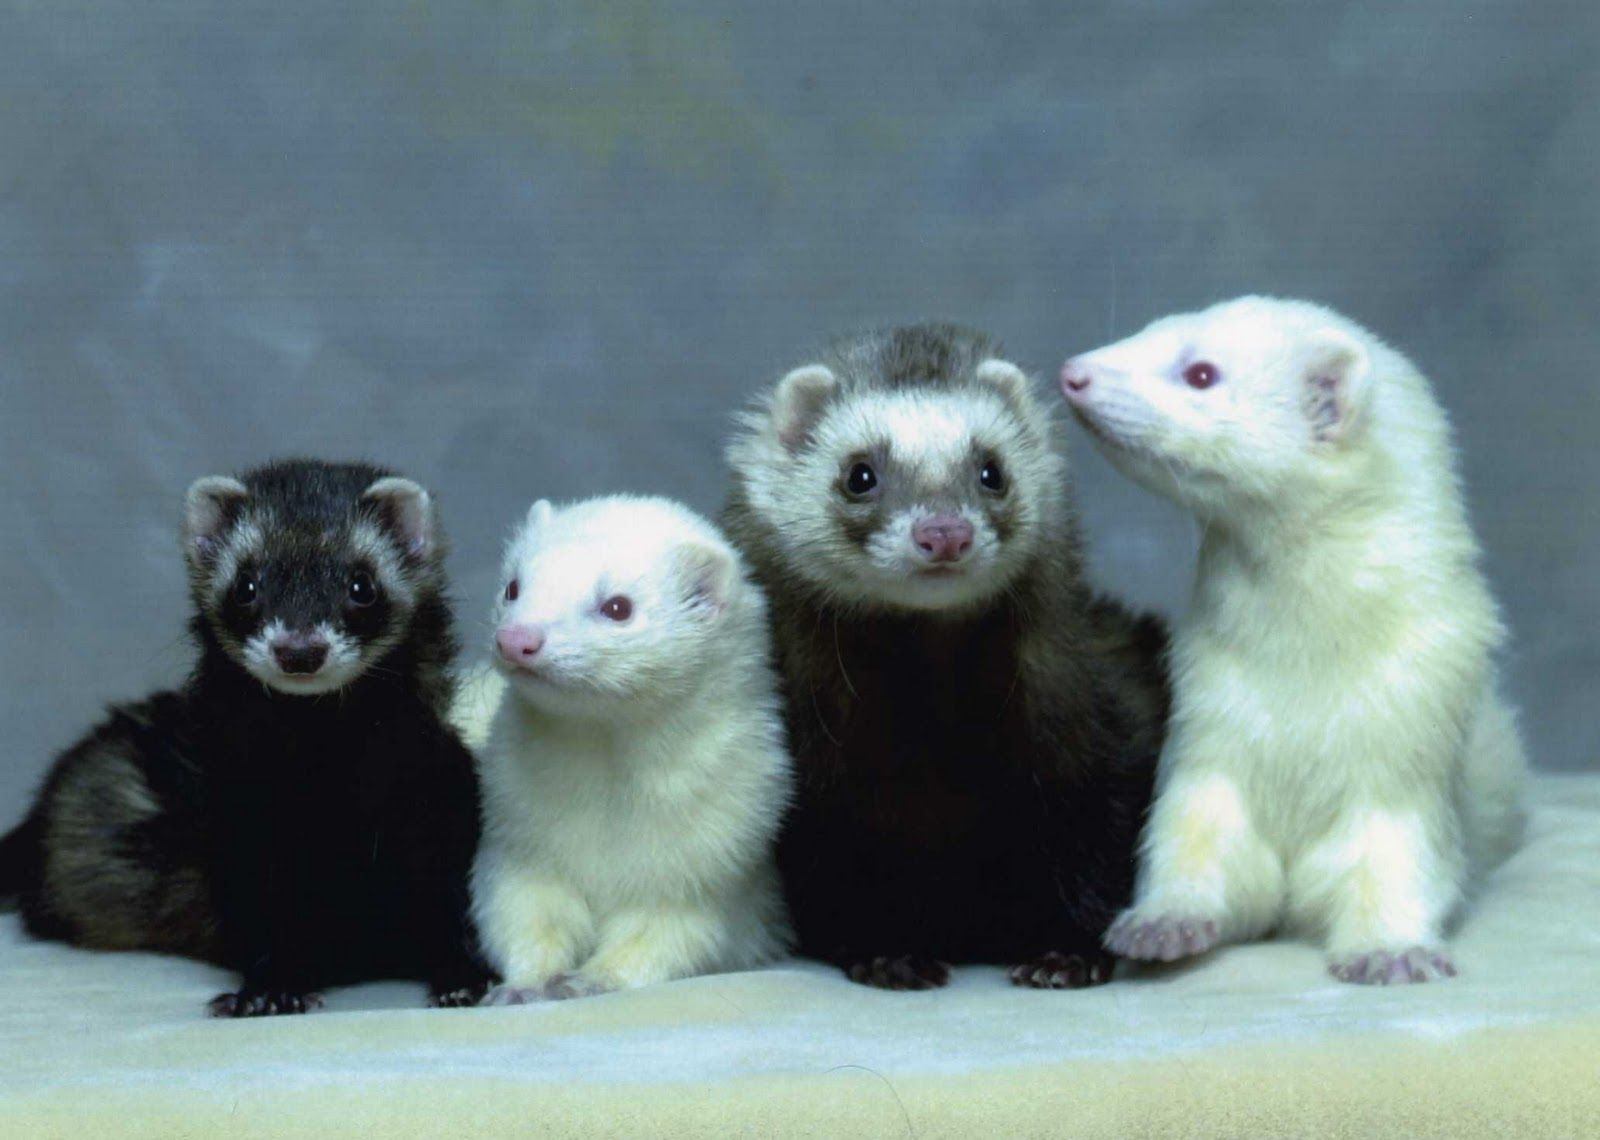 California Weasel And Ferret Ferrets Are Small Carnivorous Mammals And Therefore A Pet Ferrets Pet Ferret Ferret Cute Ferrets